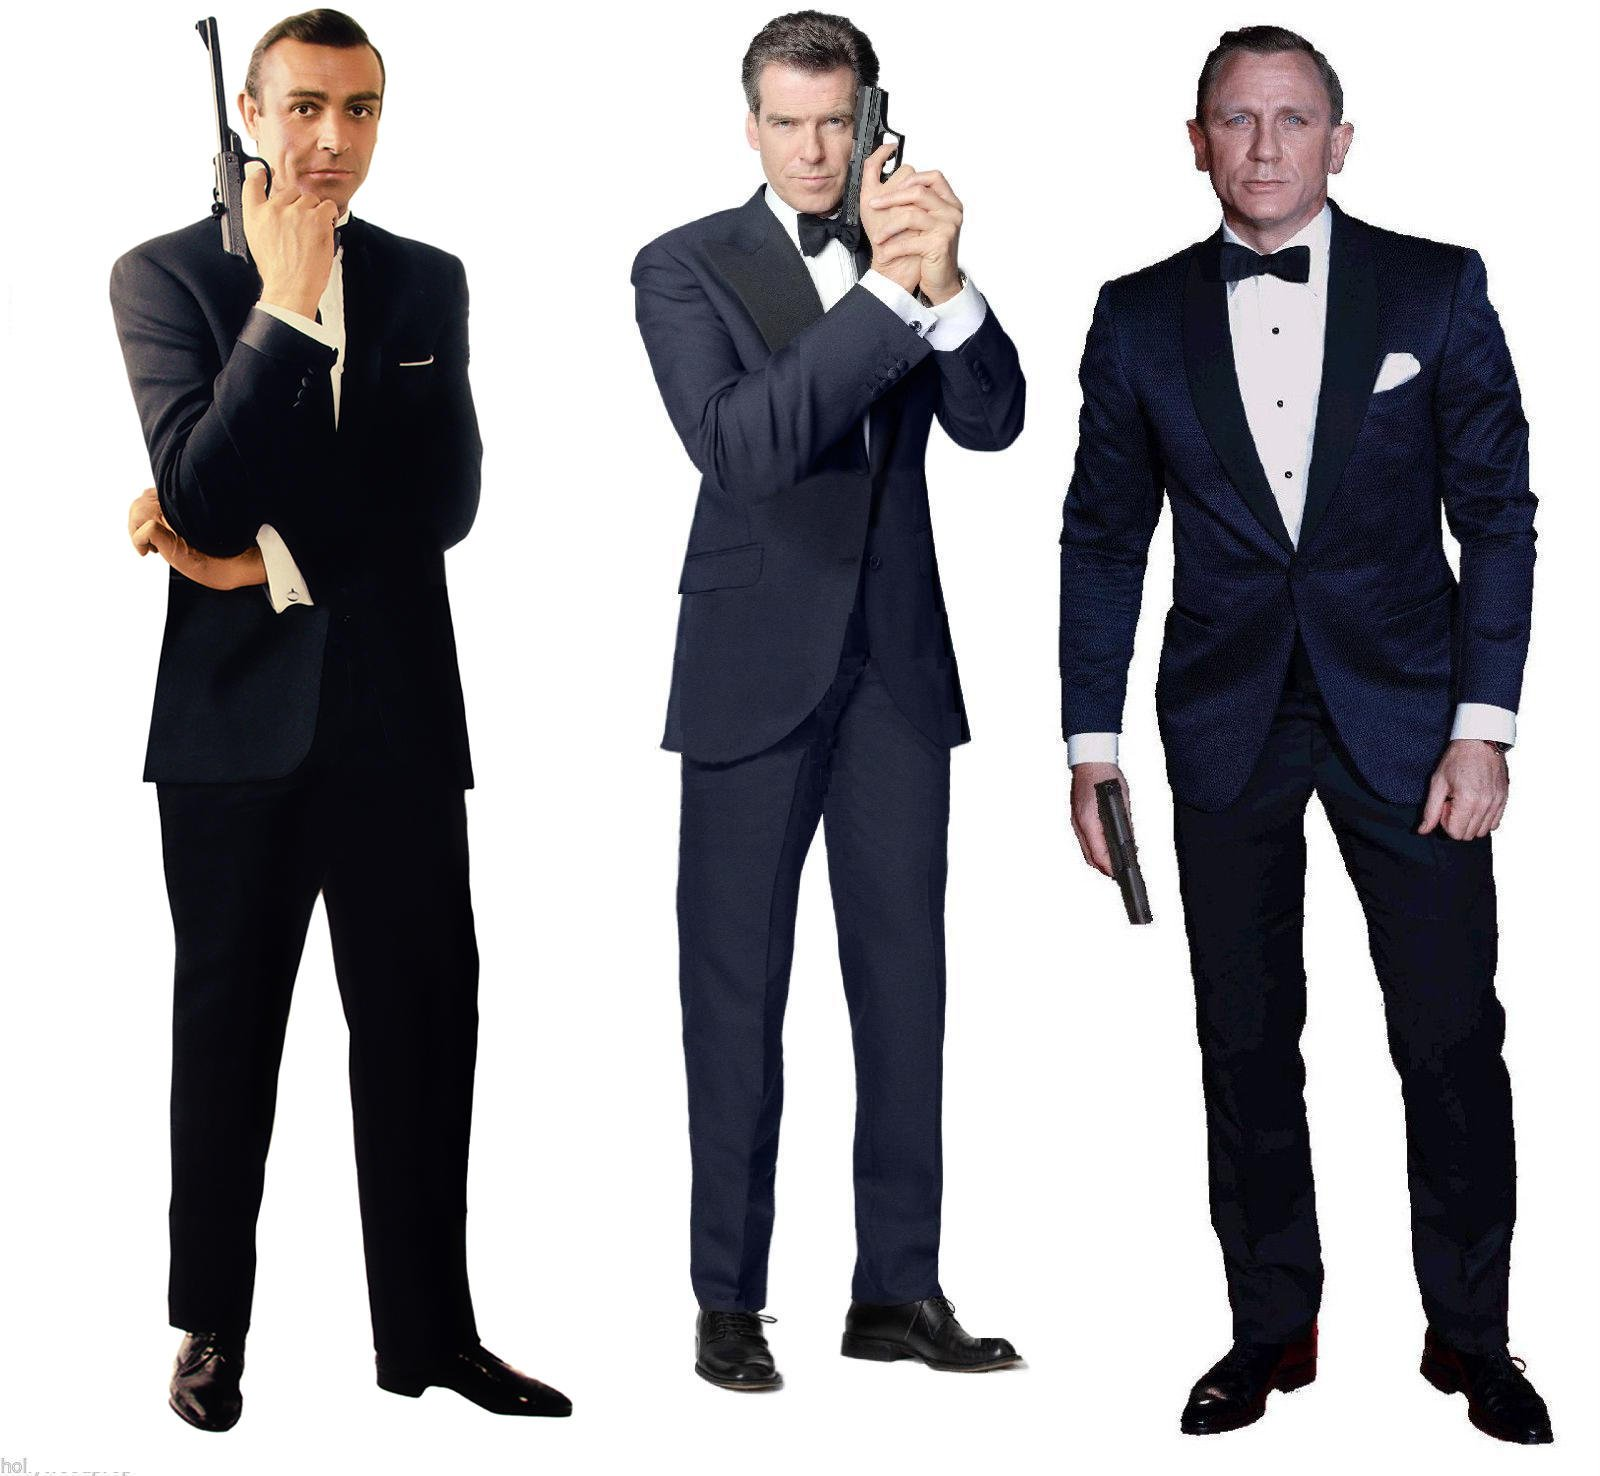 SEAN CONNERY PIERCE BROSNAN DANIEL CRAIG JAMES BOND 007 LIFESIZE CARDBOARD STANDUP STANDEE CUTOUT POSTER SET OF THREE by Hollywoodprop